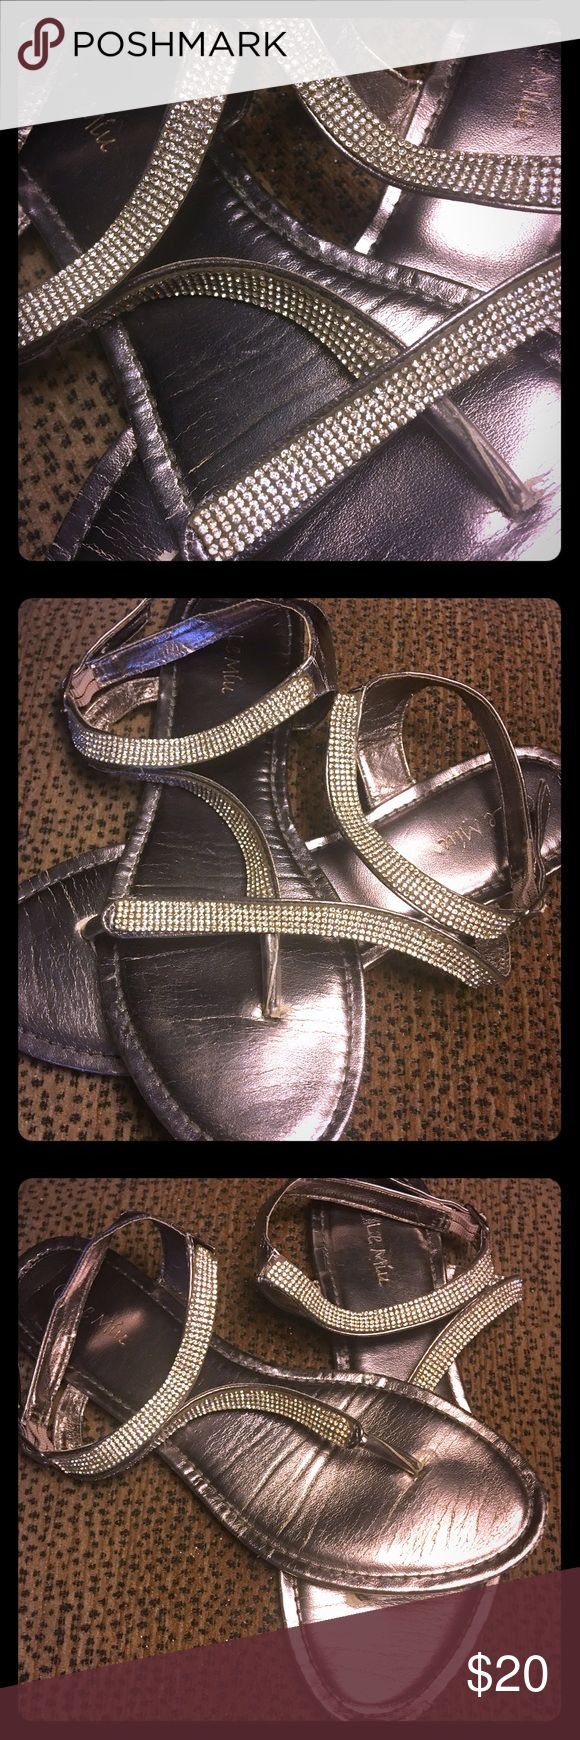 🌟 Sparkle Shiny Silver Sandals GOOD CONDITION• OFFERS WELCOME• Adorable shiny silver flat sandals w sparkles / shiny stone straps w buckle. Minor wear n tear. Refer to pics. All stones in tact. Wore them in my besties outdoor wedding. Still TONS of life in these gorgeous sandals. Size 8.5 Shoes Sandals